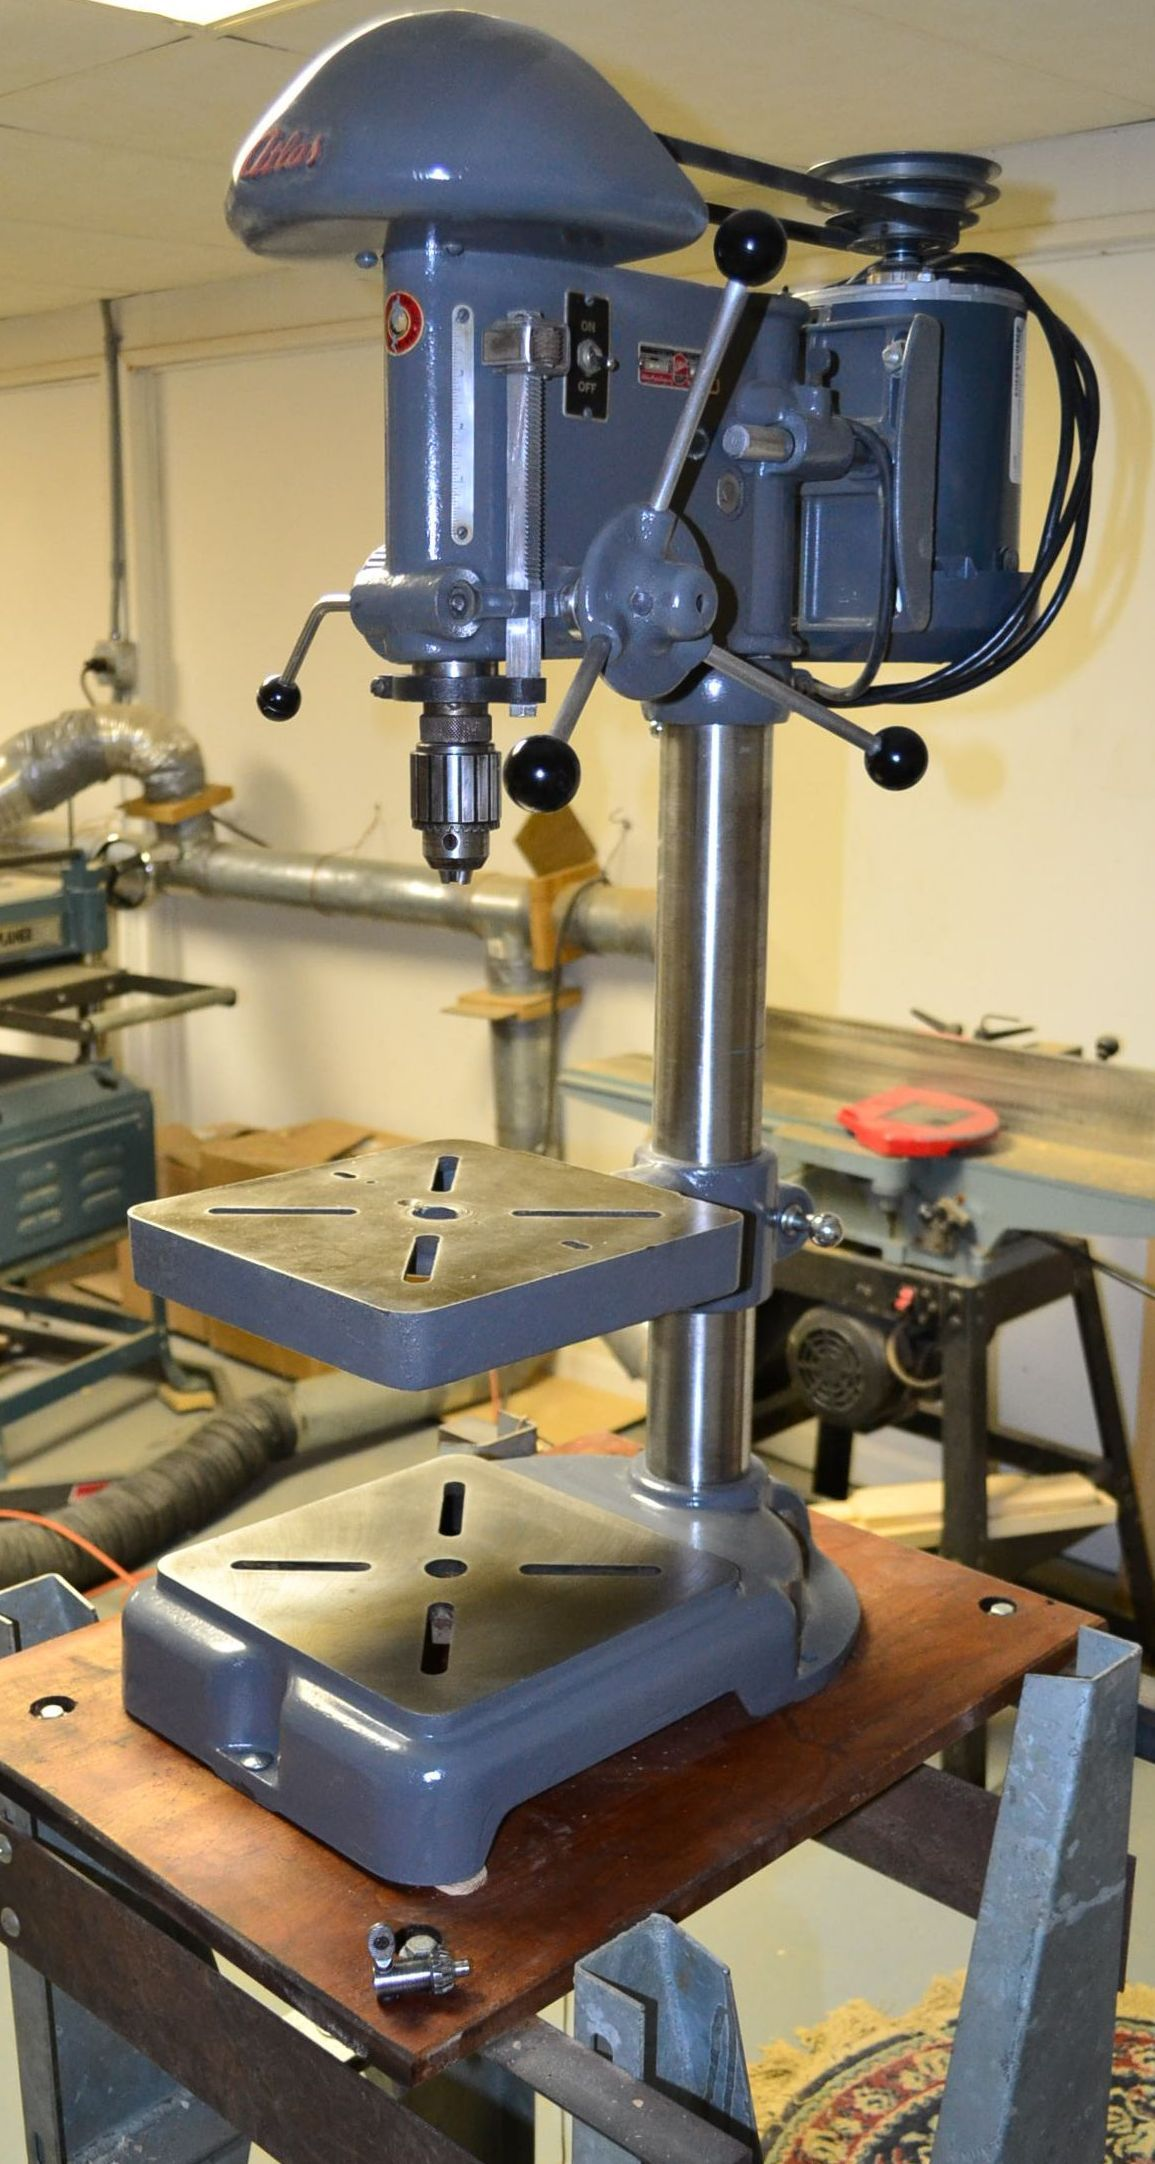 Atlas drill press | Woodworking | Pinterest | Drill press, Antique tools and Machine tools